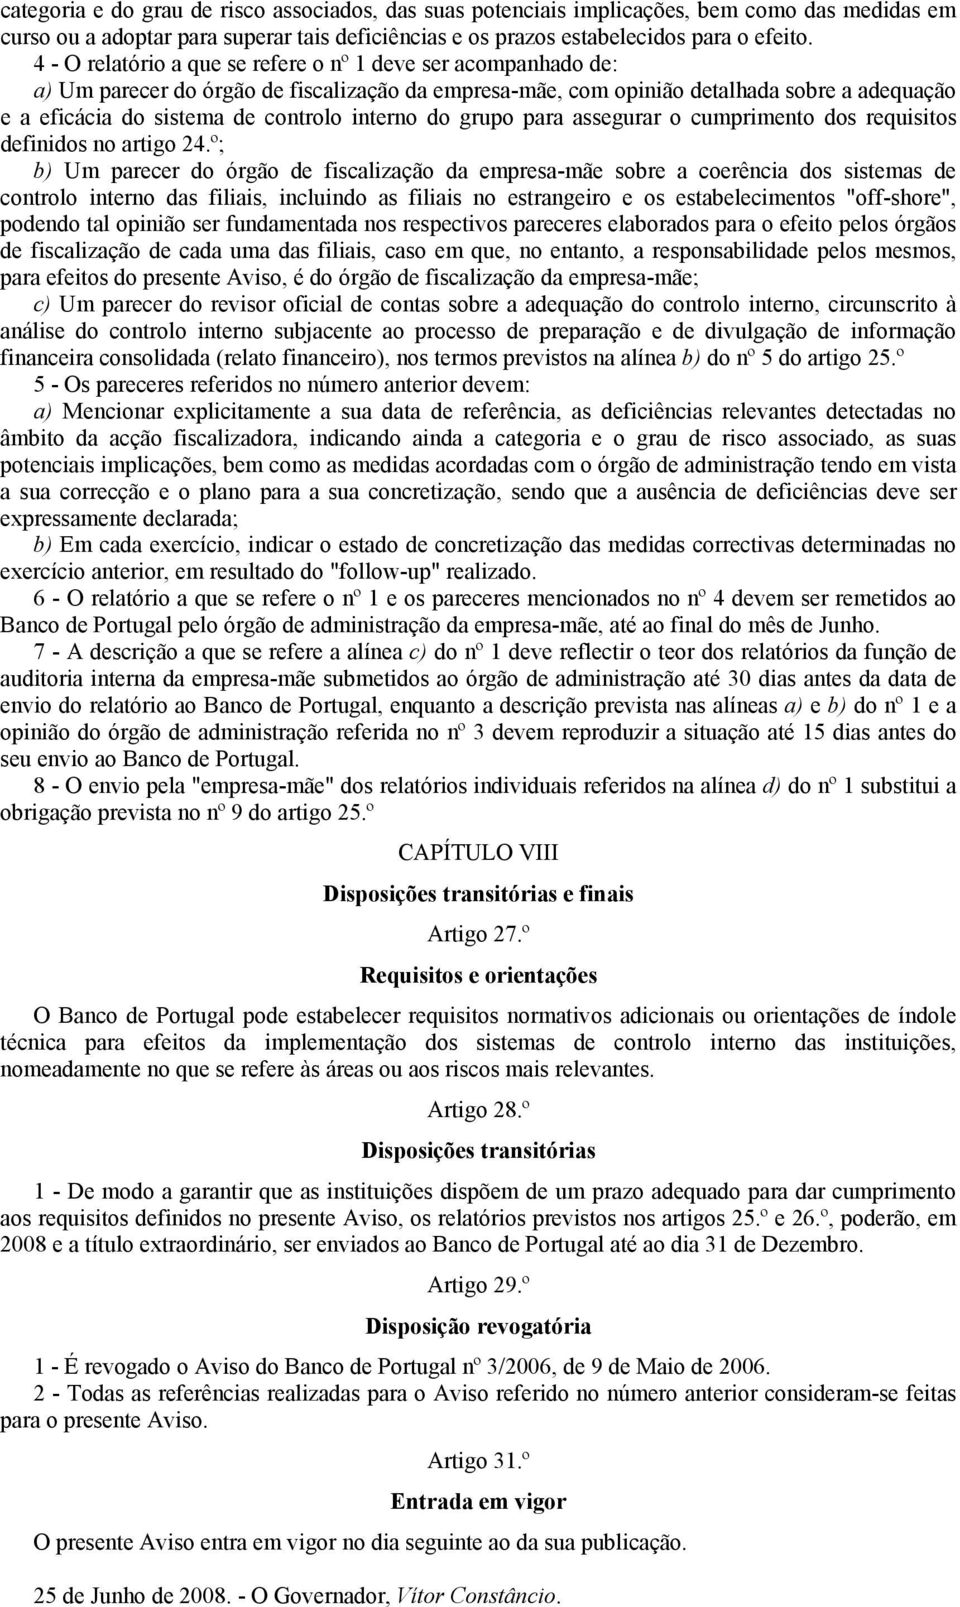 interno do grupo para assegurar o cumprimento dos requisitos definidos no artigo 24.